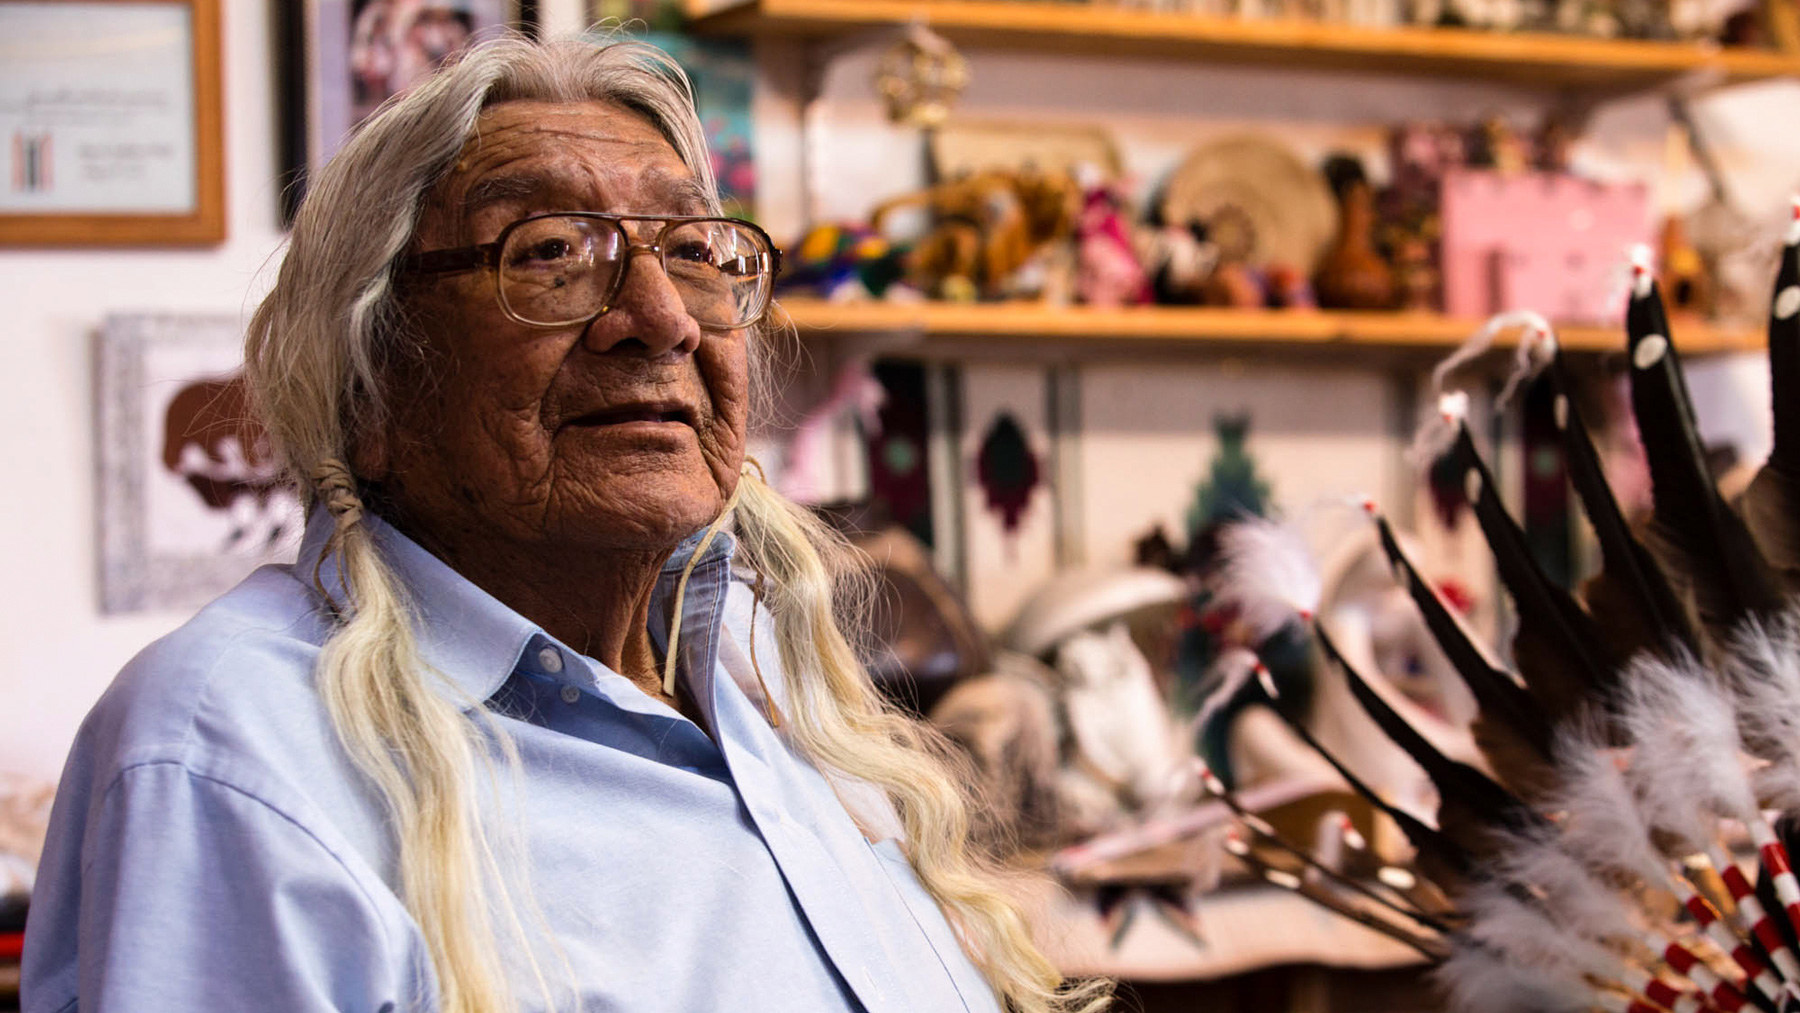 Mark Soldier Wolf of the Arapaho Nation is the father of 10 children and a veteran of the Korean War. He said he was kicked off his land to make way for a uranium mill. (Lauren Kaljur/News21)